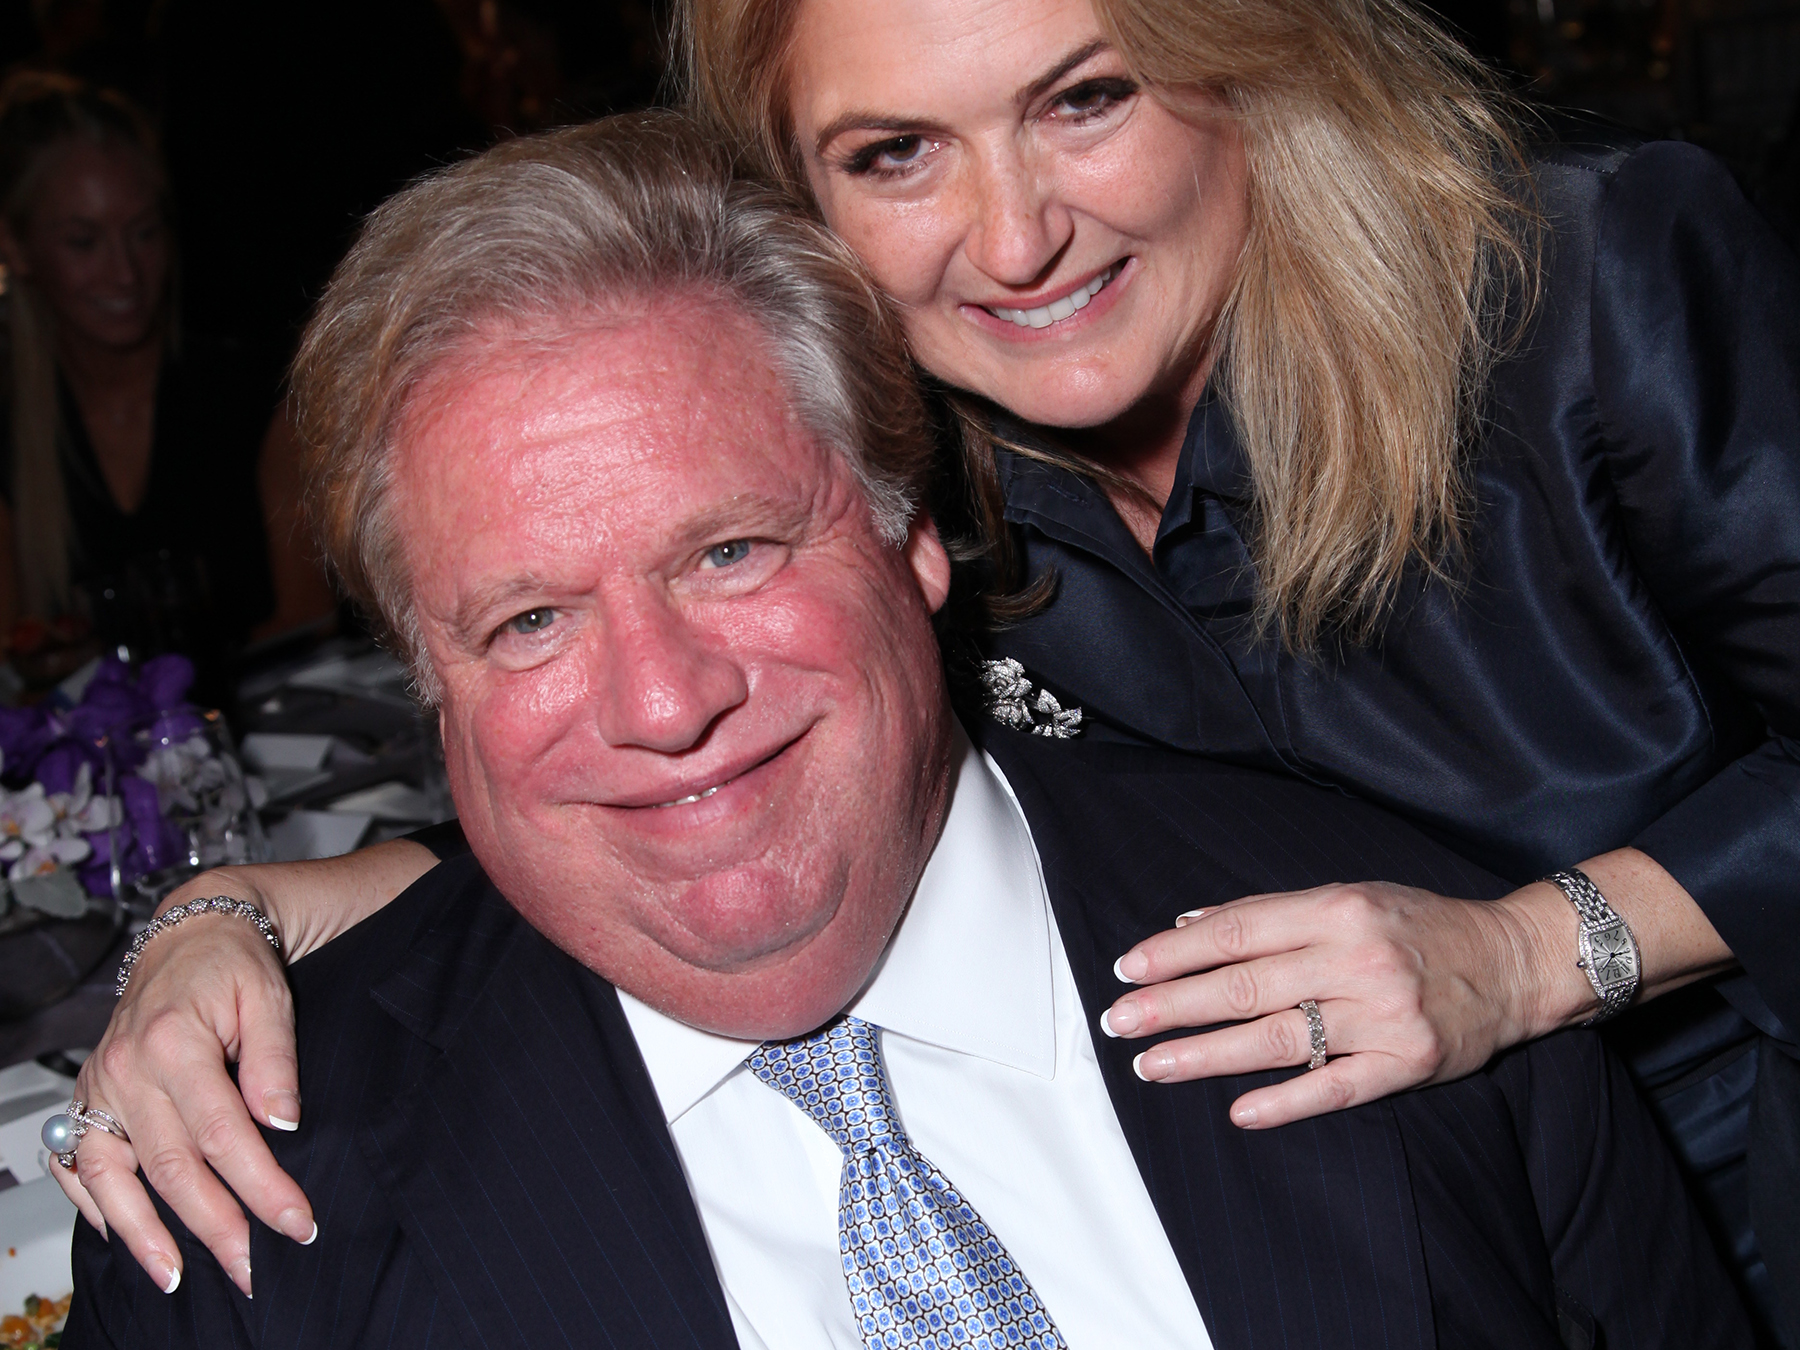 GOP fundraiser Broidy under investigation for alleged effort to sell  government influence, people familiar with probe say - The Washington Post